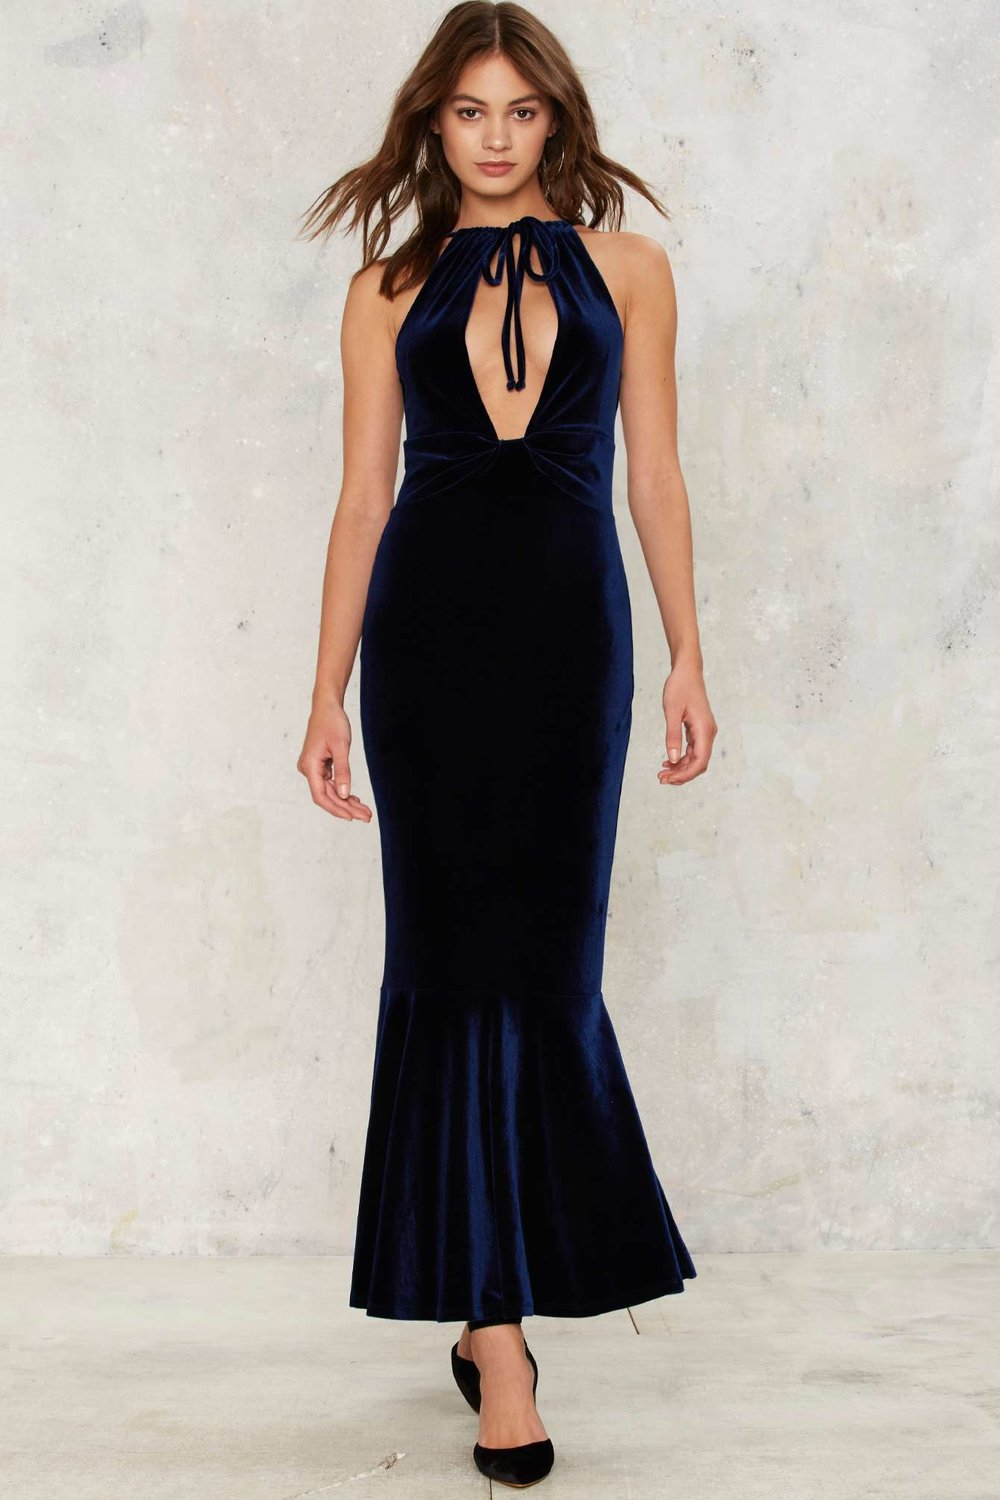 Nasty Gal Bid Adieu Velvet Maxi Dress